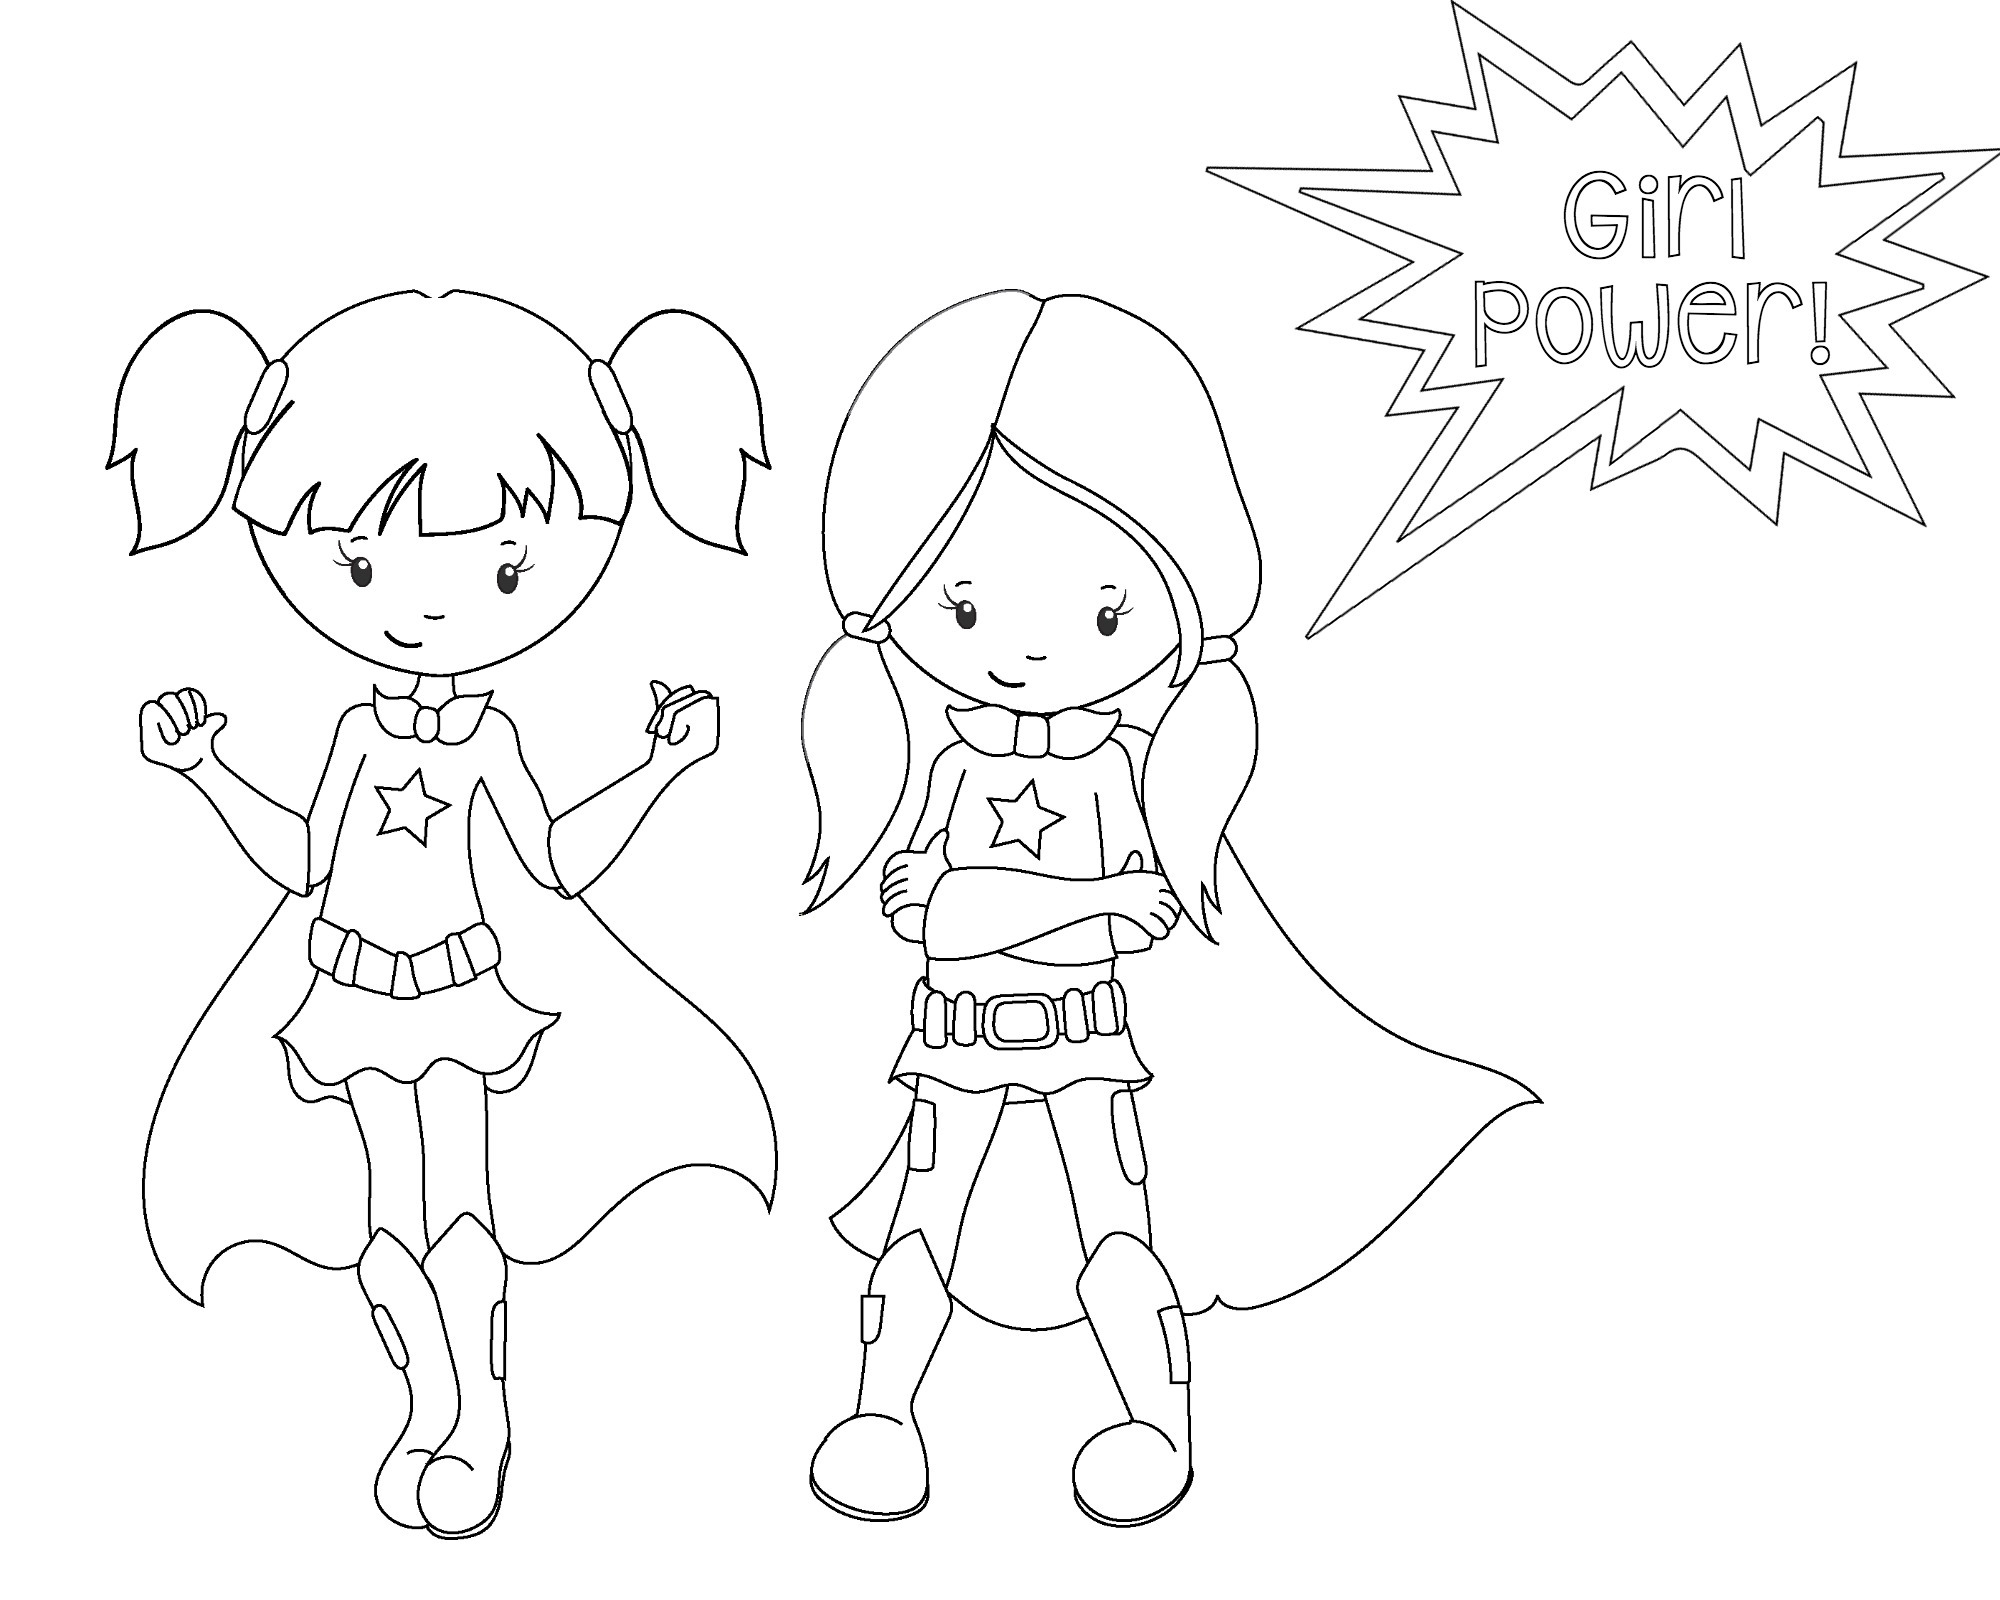 lego superheroes coloring pages Download-Lego Super Heroes Coloring Pages 1-i